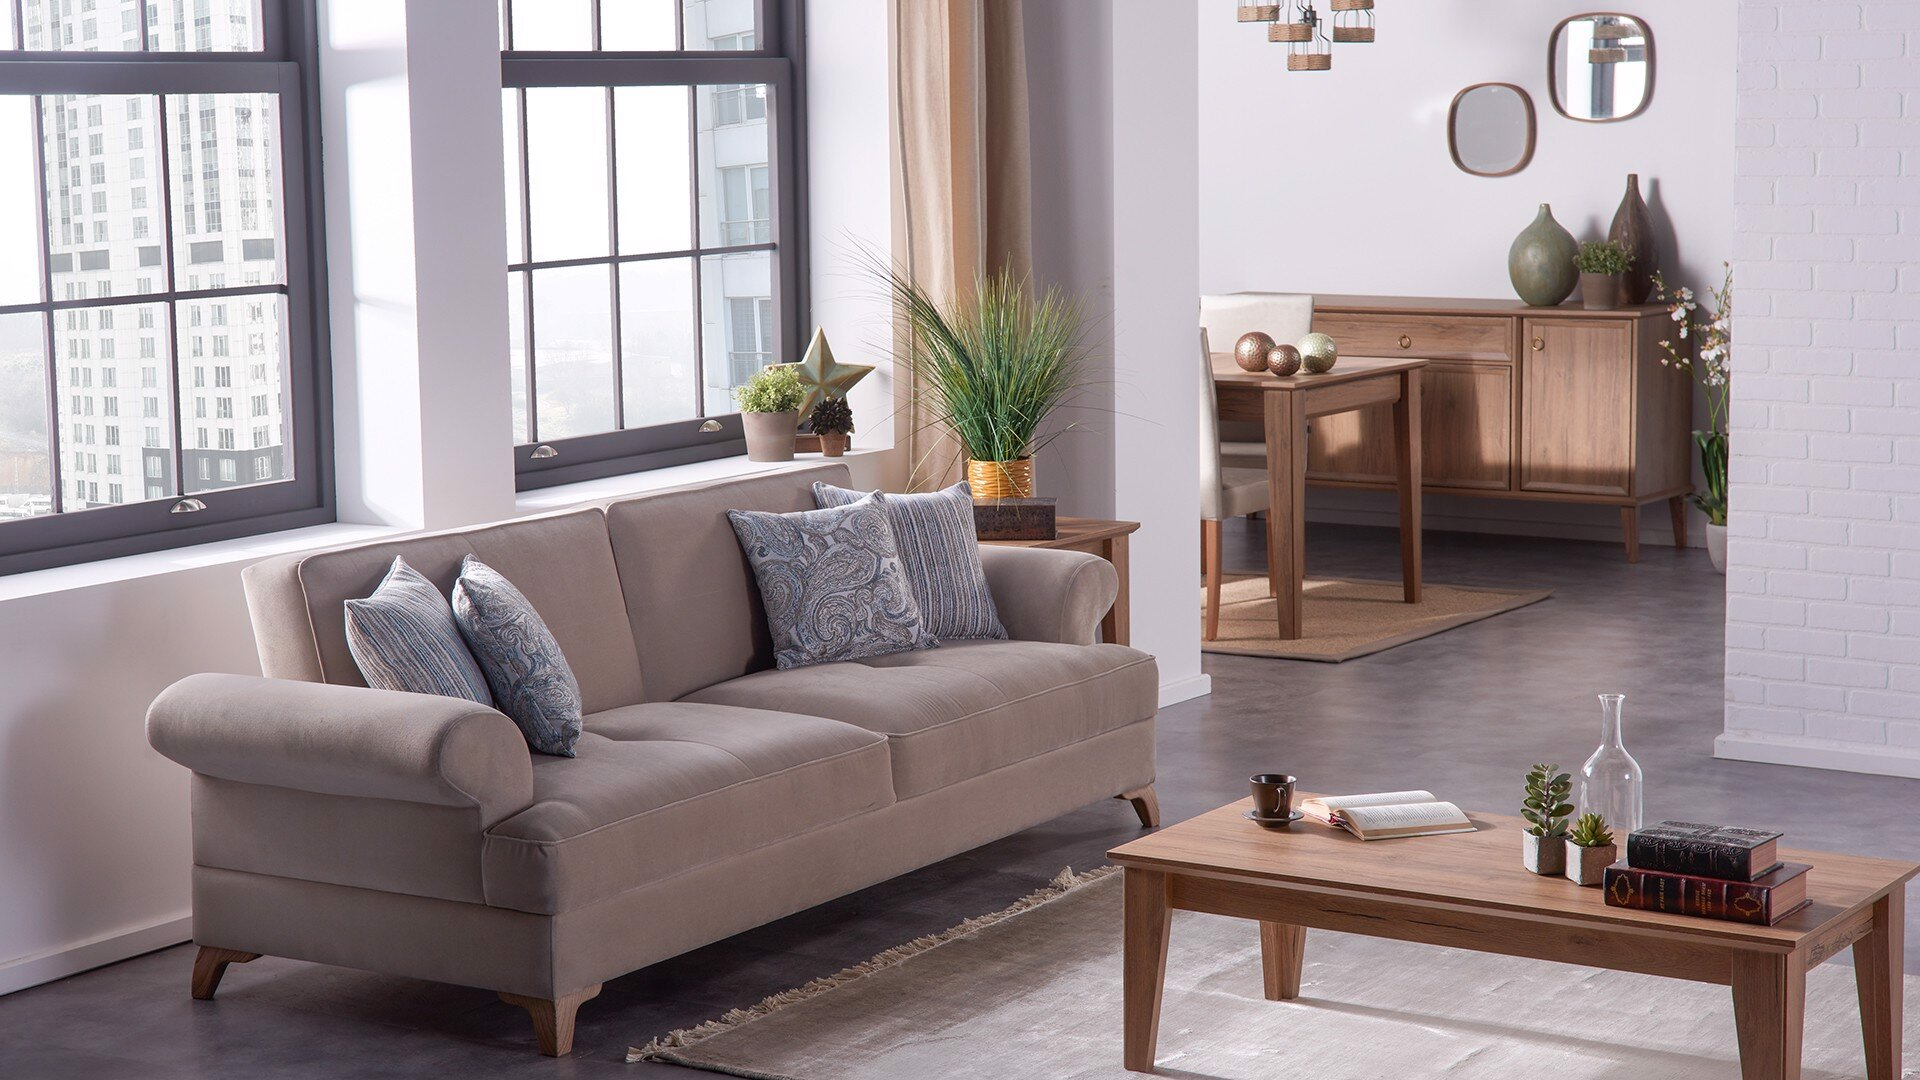 Parma 2 Seater Sofa Bed